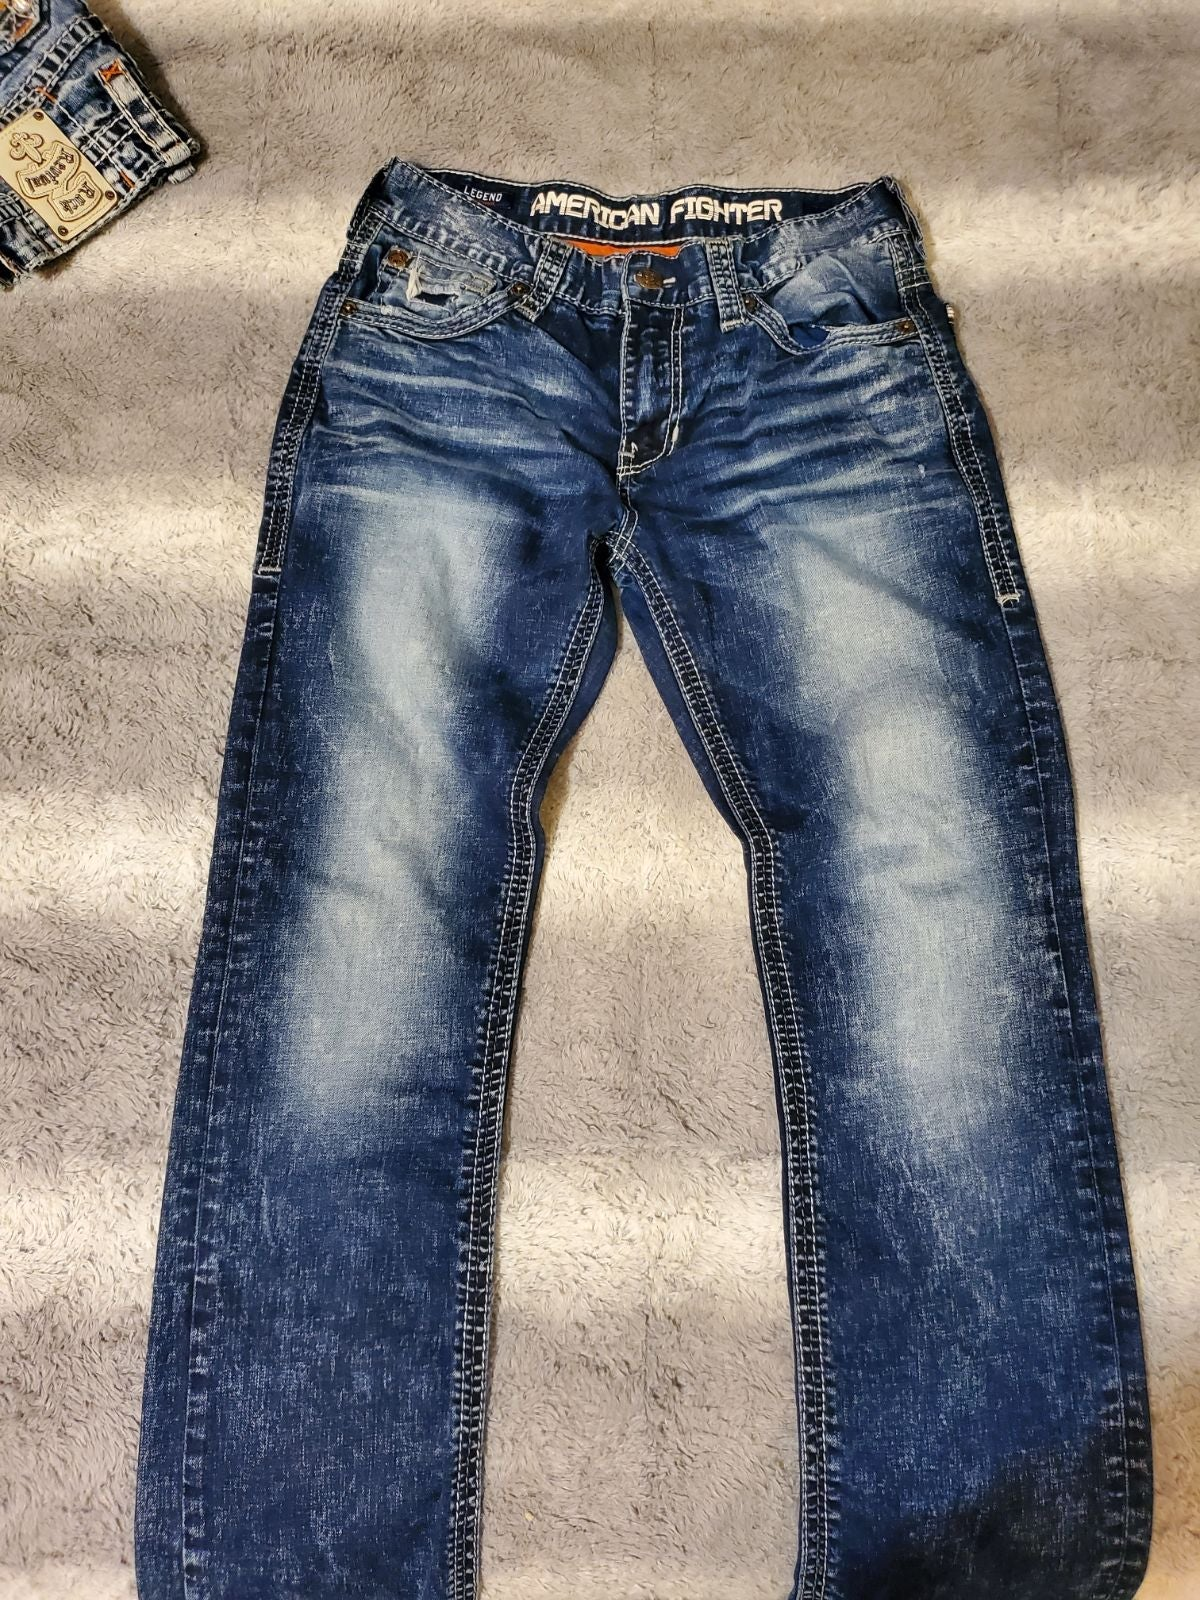 American fighter jeans